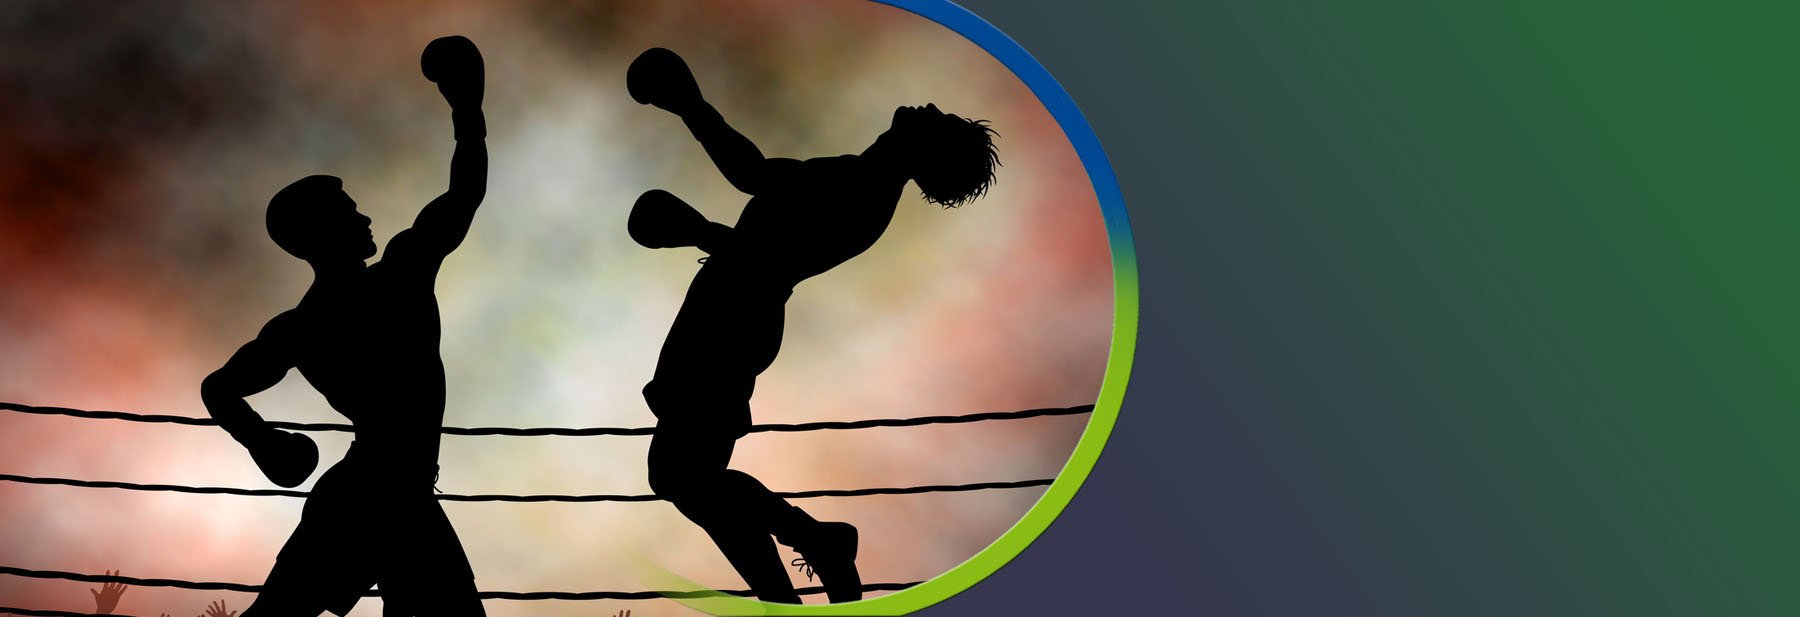 Boxing Management Software for Clubs